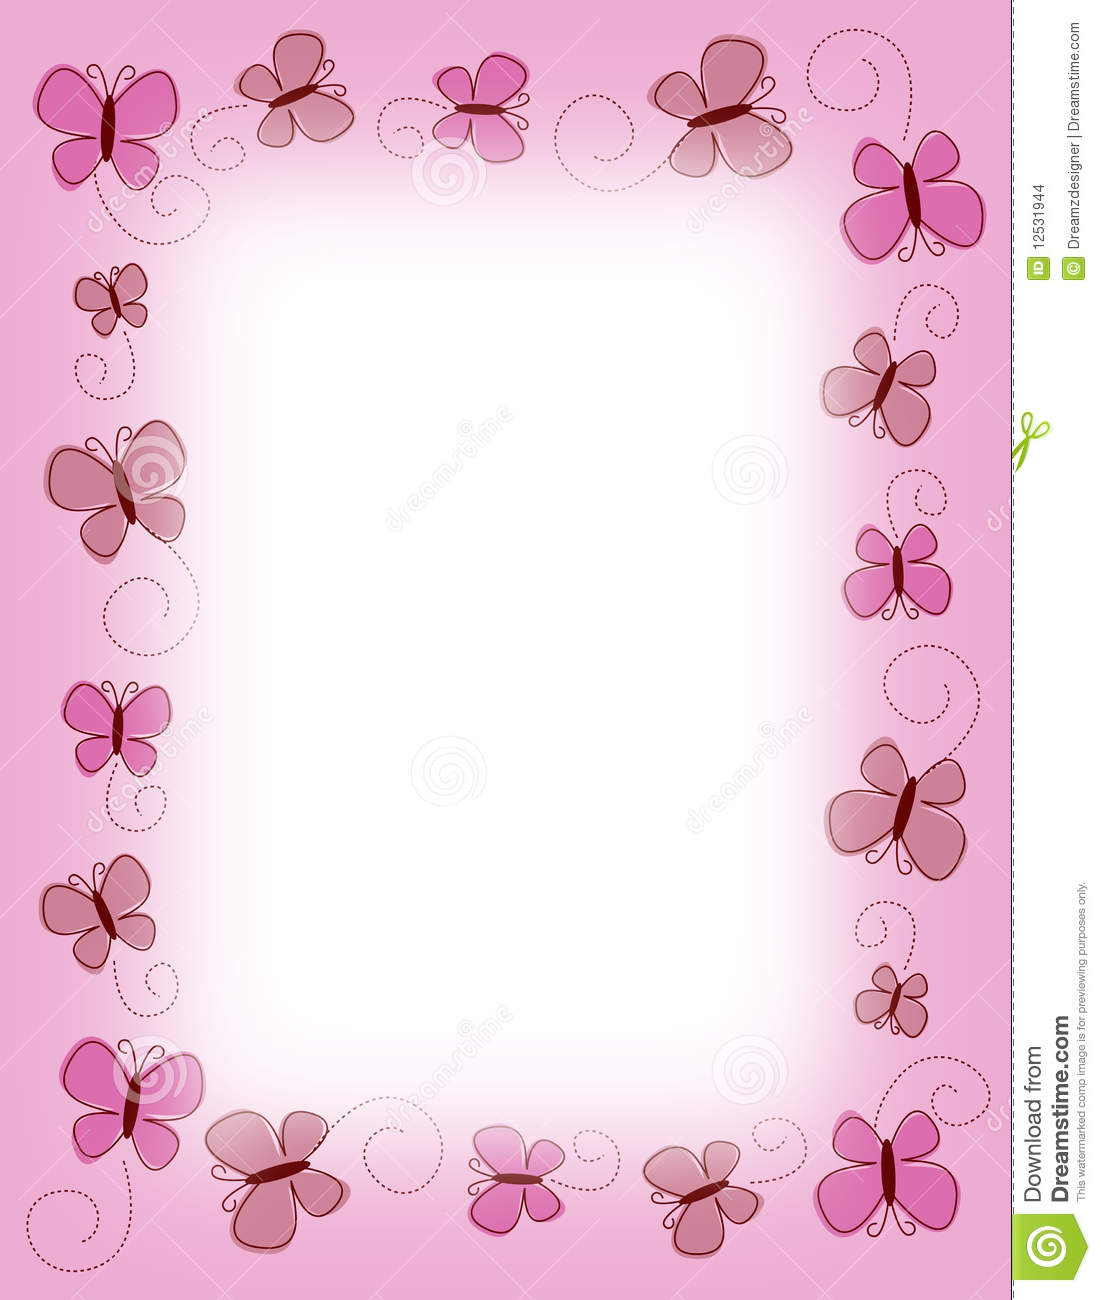 Cute Bordered Pastel Flower Wallpaper Pink Butterfly Frames Www Pixshark Com Images